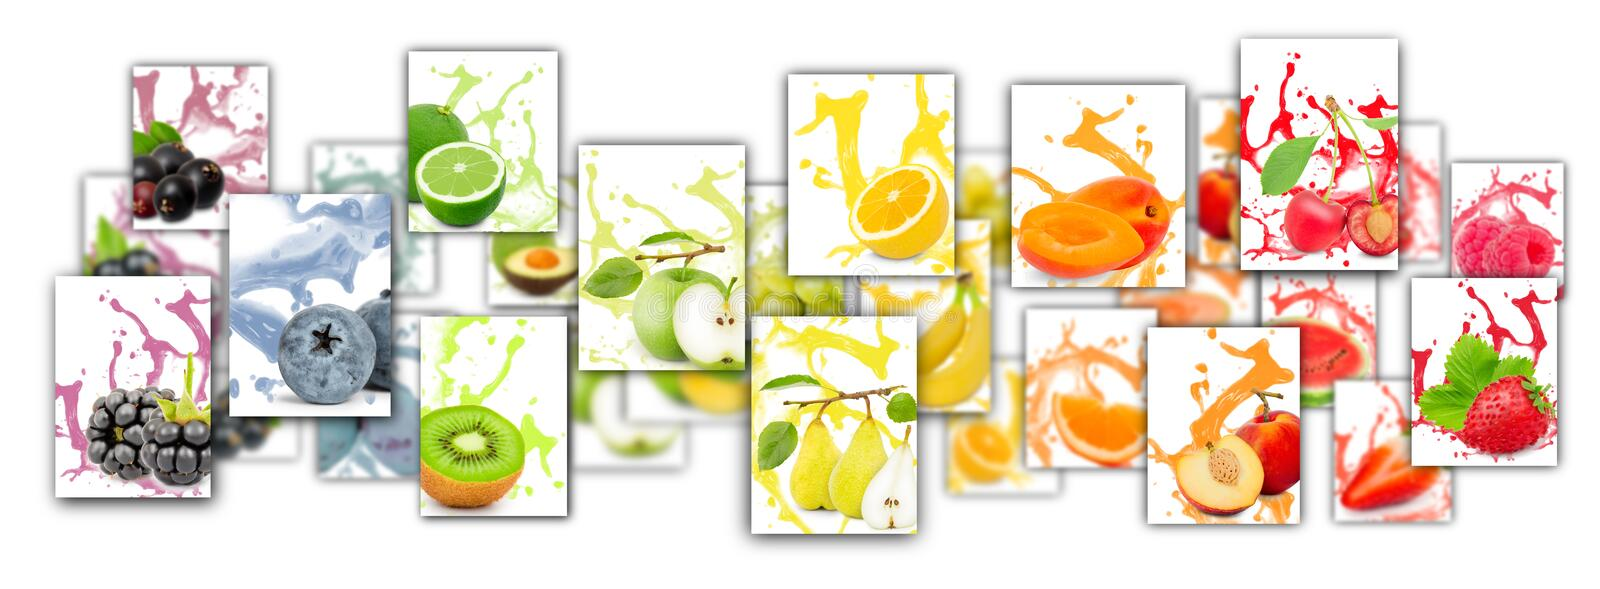 Fruit Splash Mix royalty free stock photos